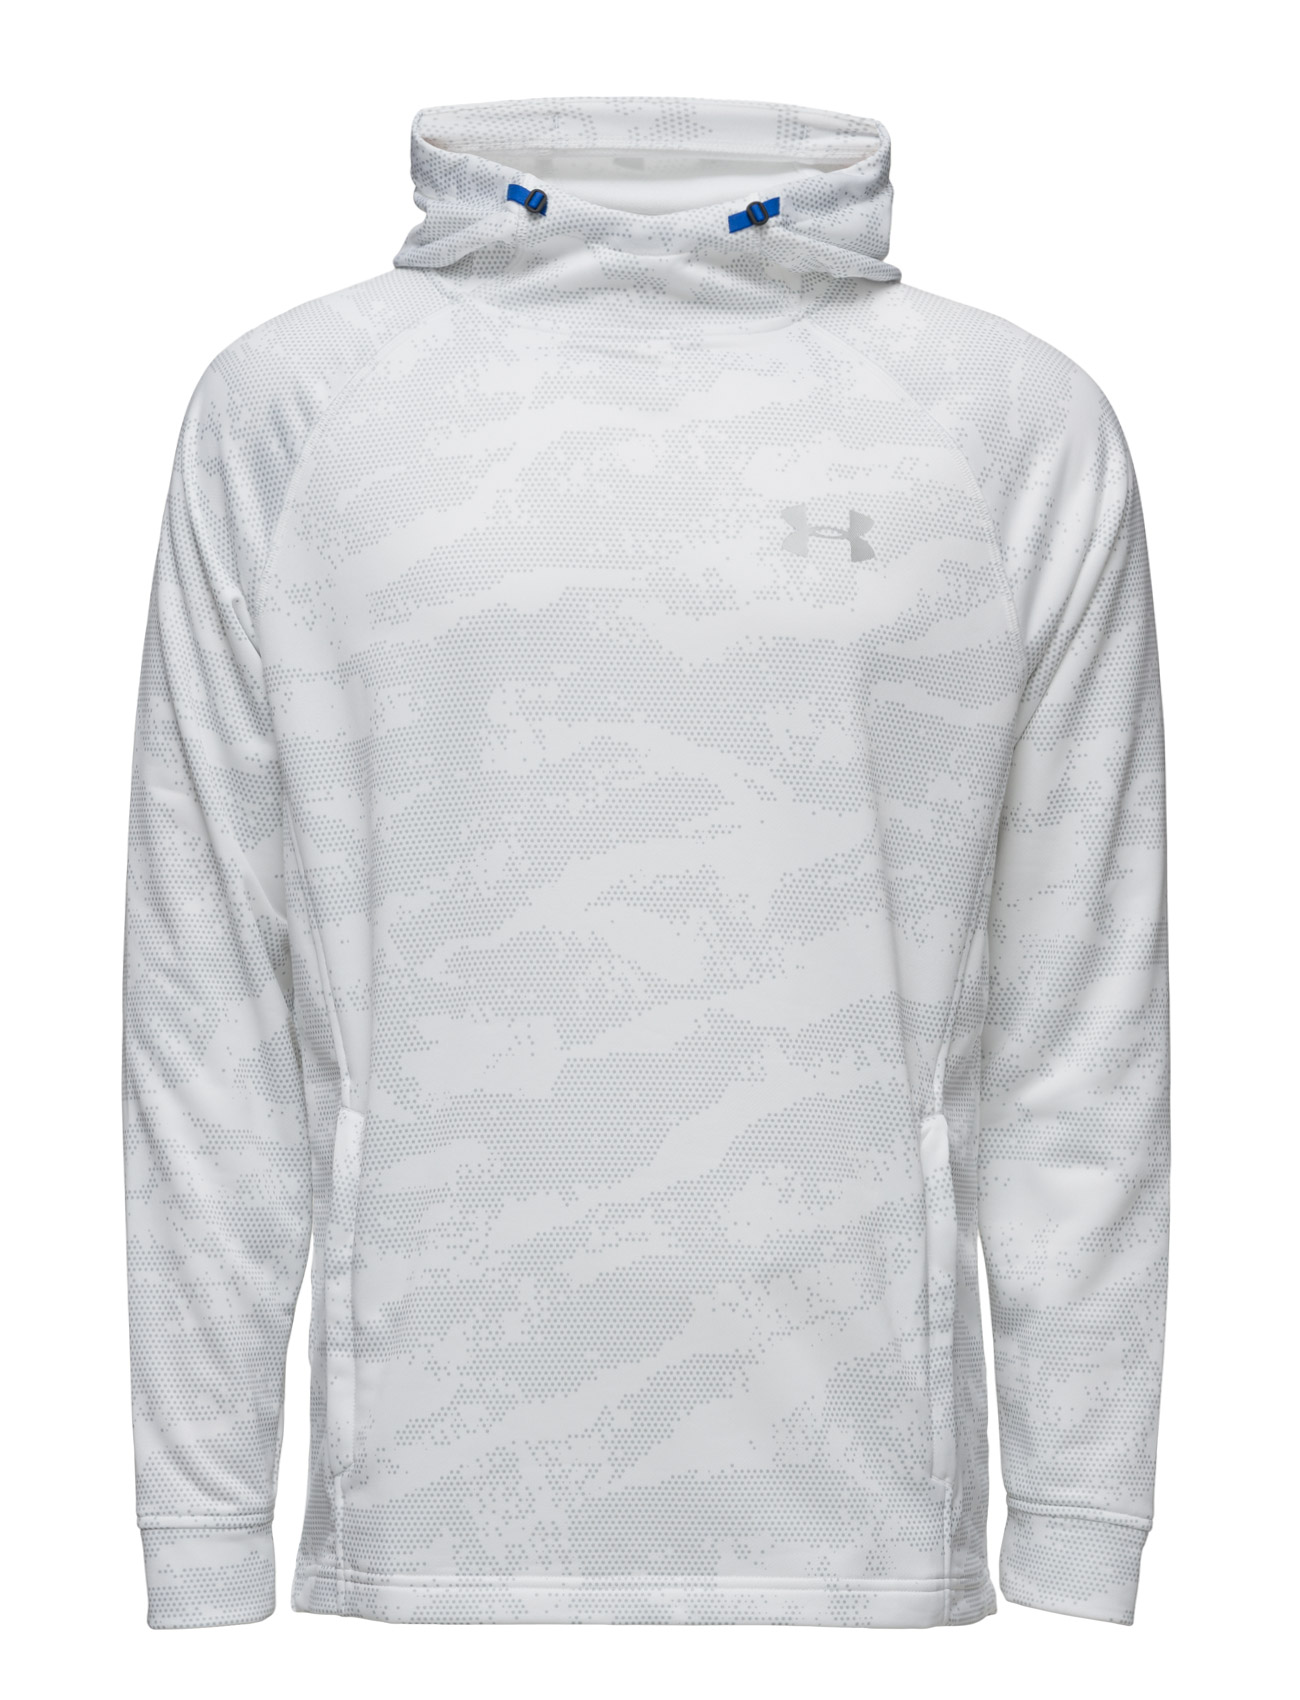 Tech Terry Fitted Po Hoodie Under Armour Sports toppe til Mænd i